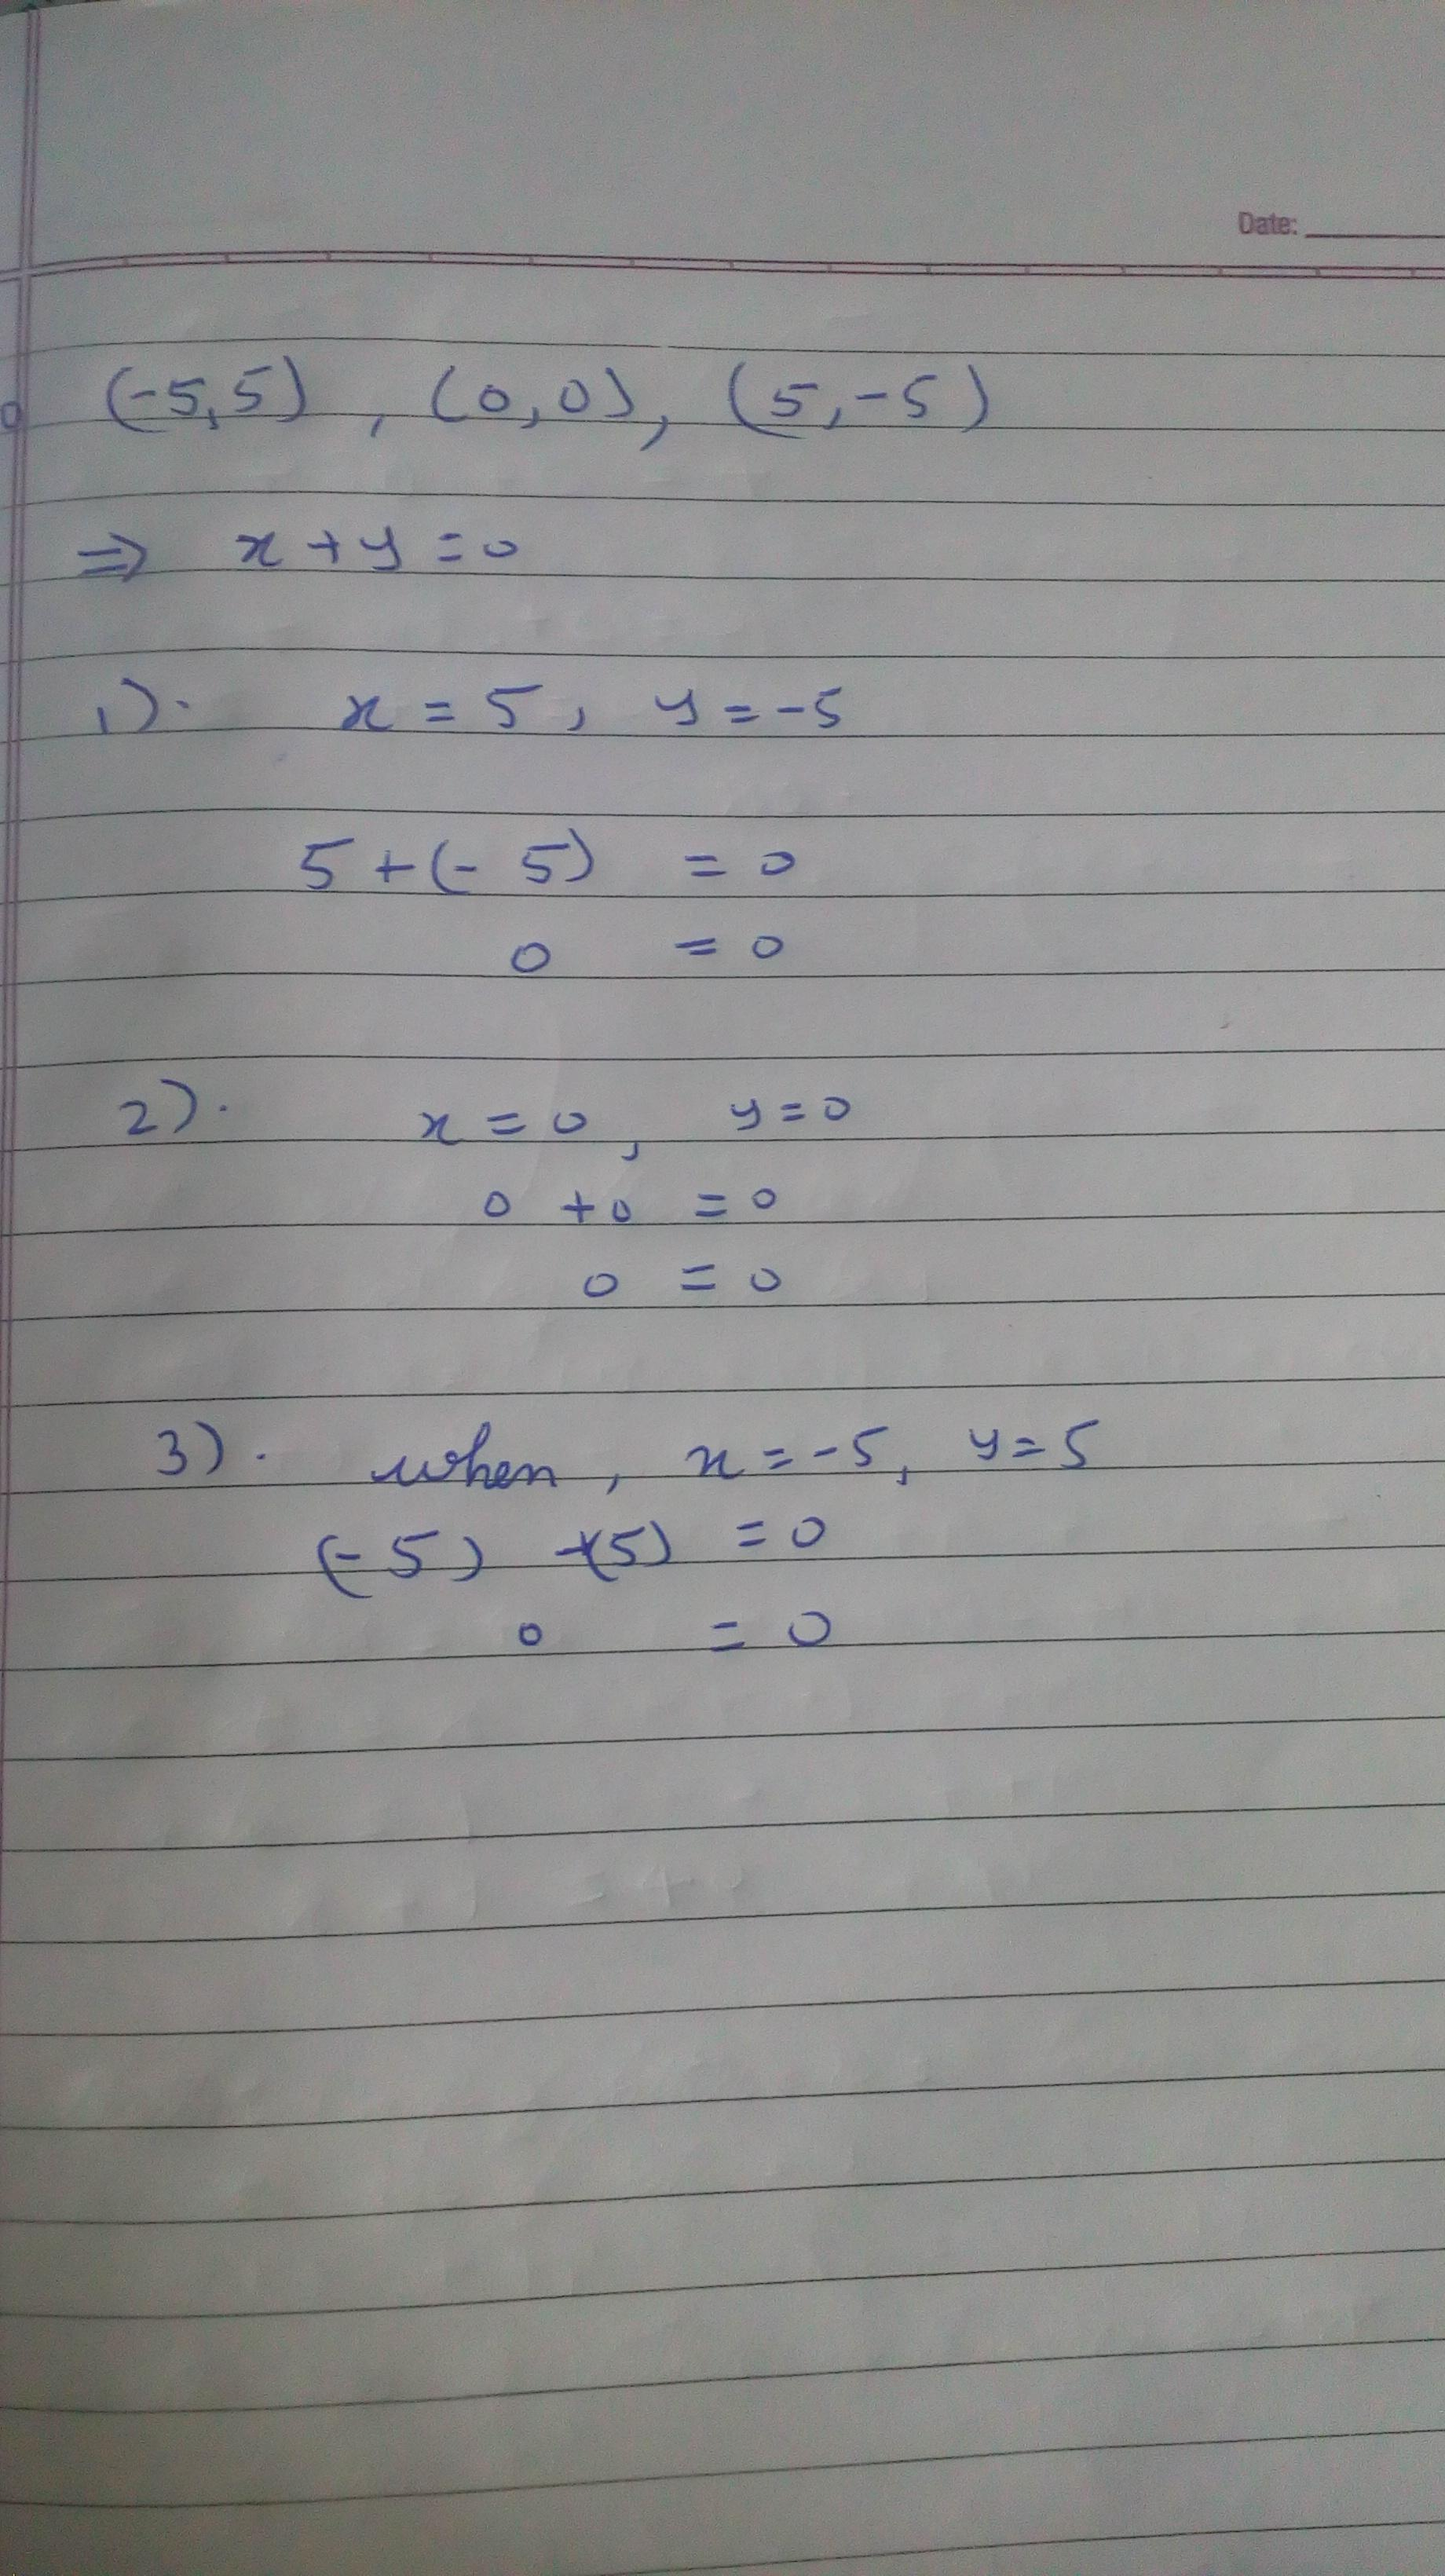 If Linear Equation Has Solutions (5,-5),(0,0),(5,-5), Then